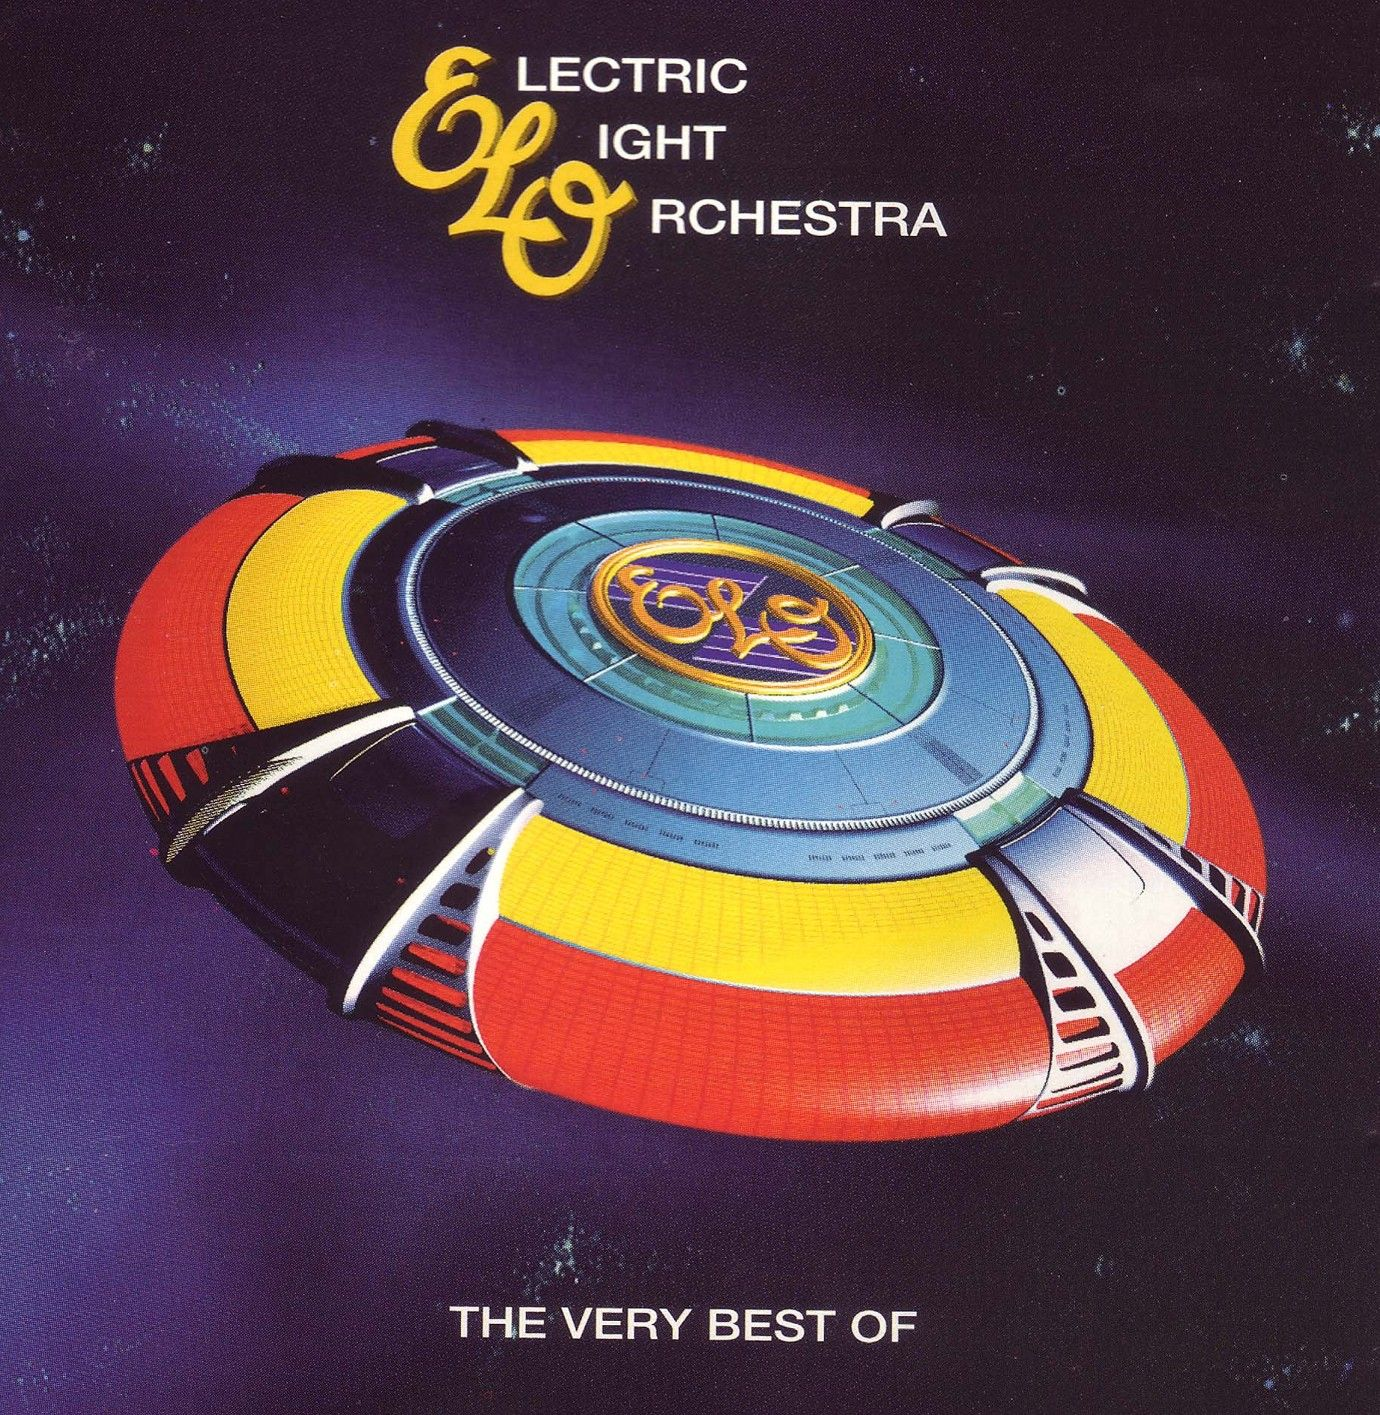 Electric Light Orchestra Electric Lighter Orchestra Orchestra Music